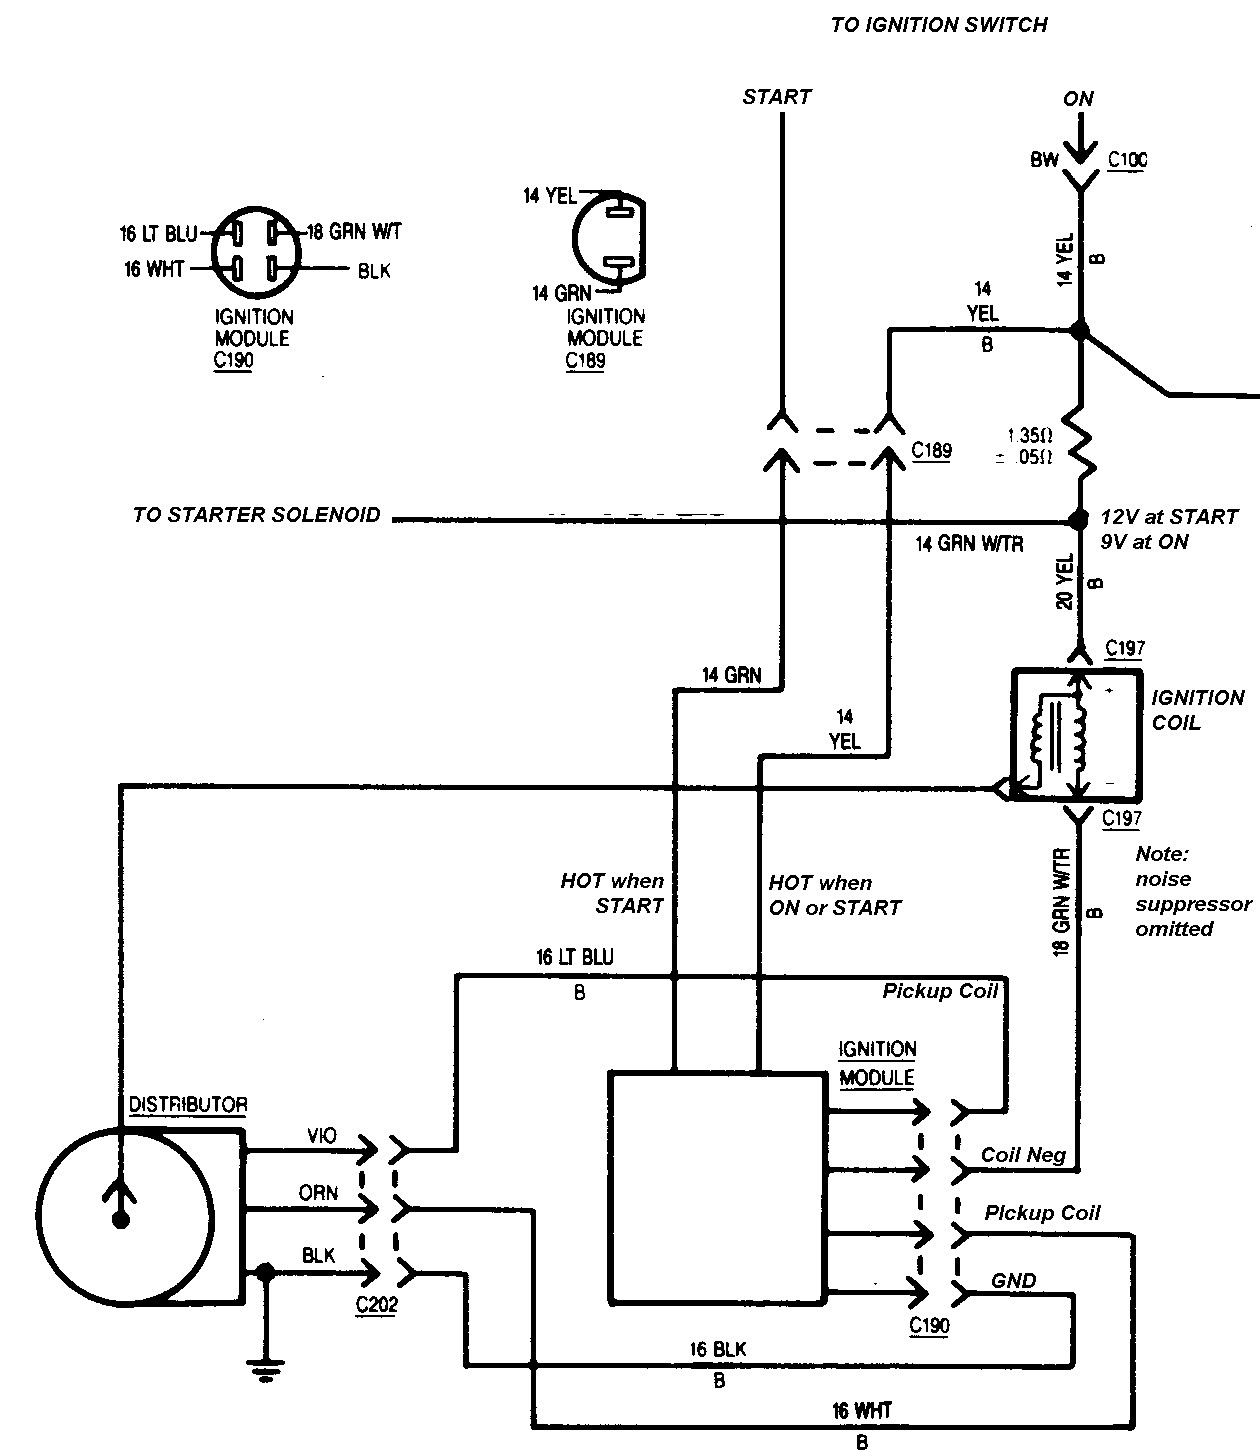 Astonishing Starter Solenoid Wiring Diagram As Well Gm Starter Solenoid Wiring Wiring Cloud Picalendutblikvittorg